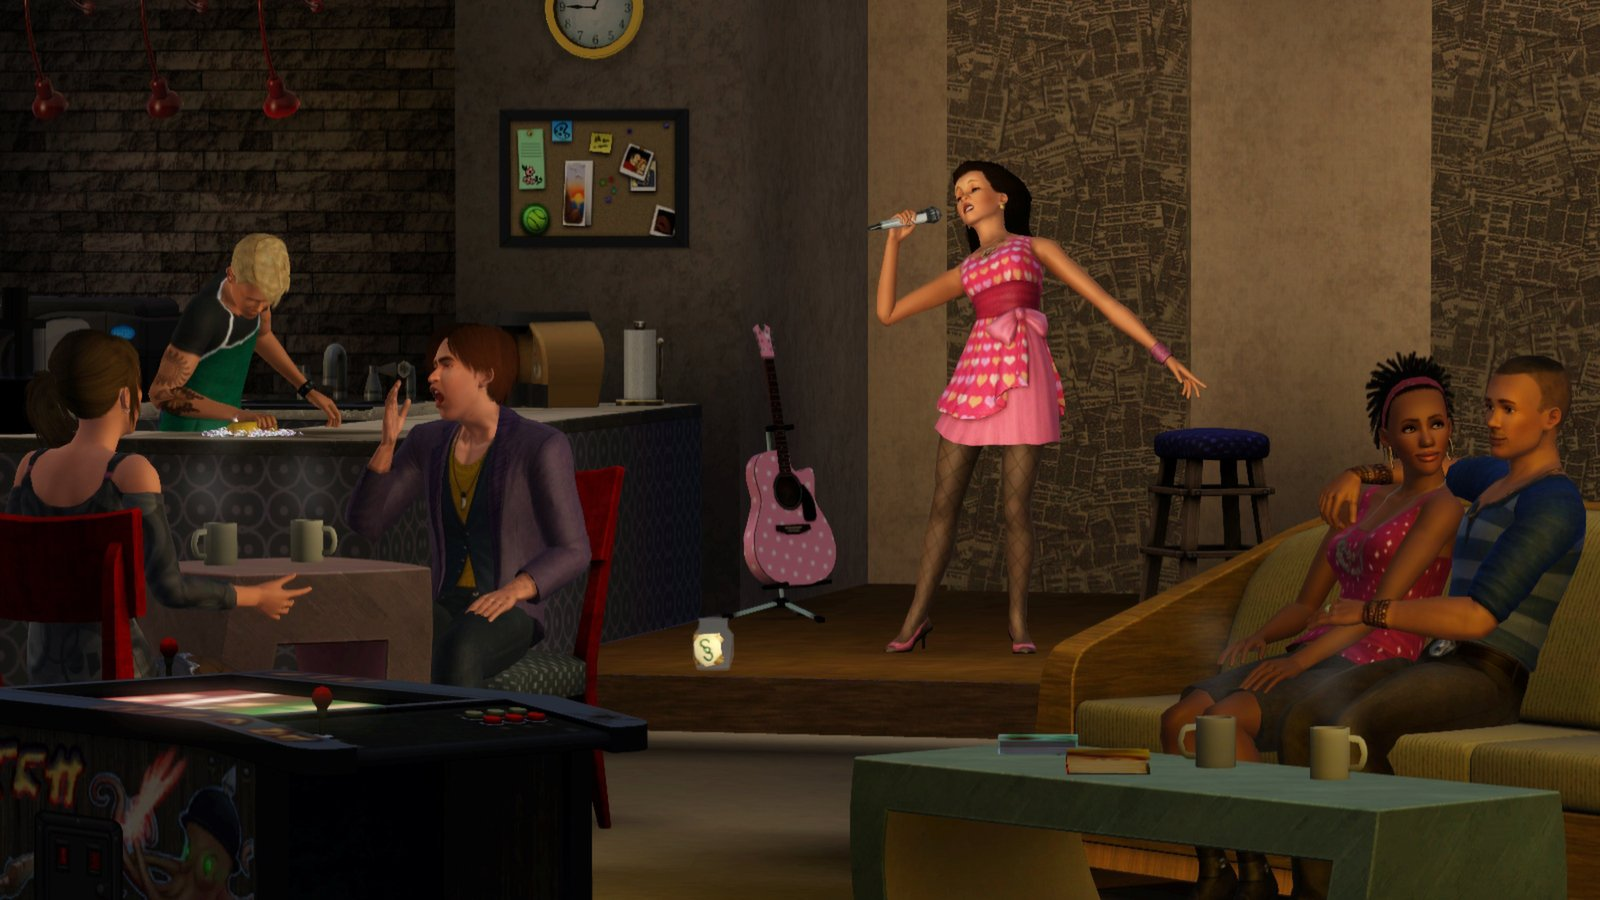 The Sims 3 Showtime 8